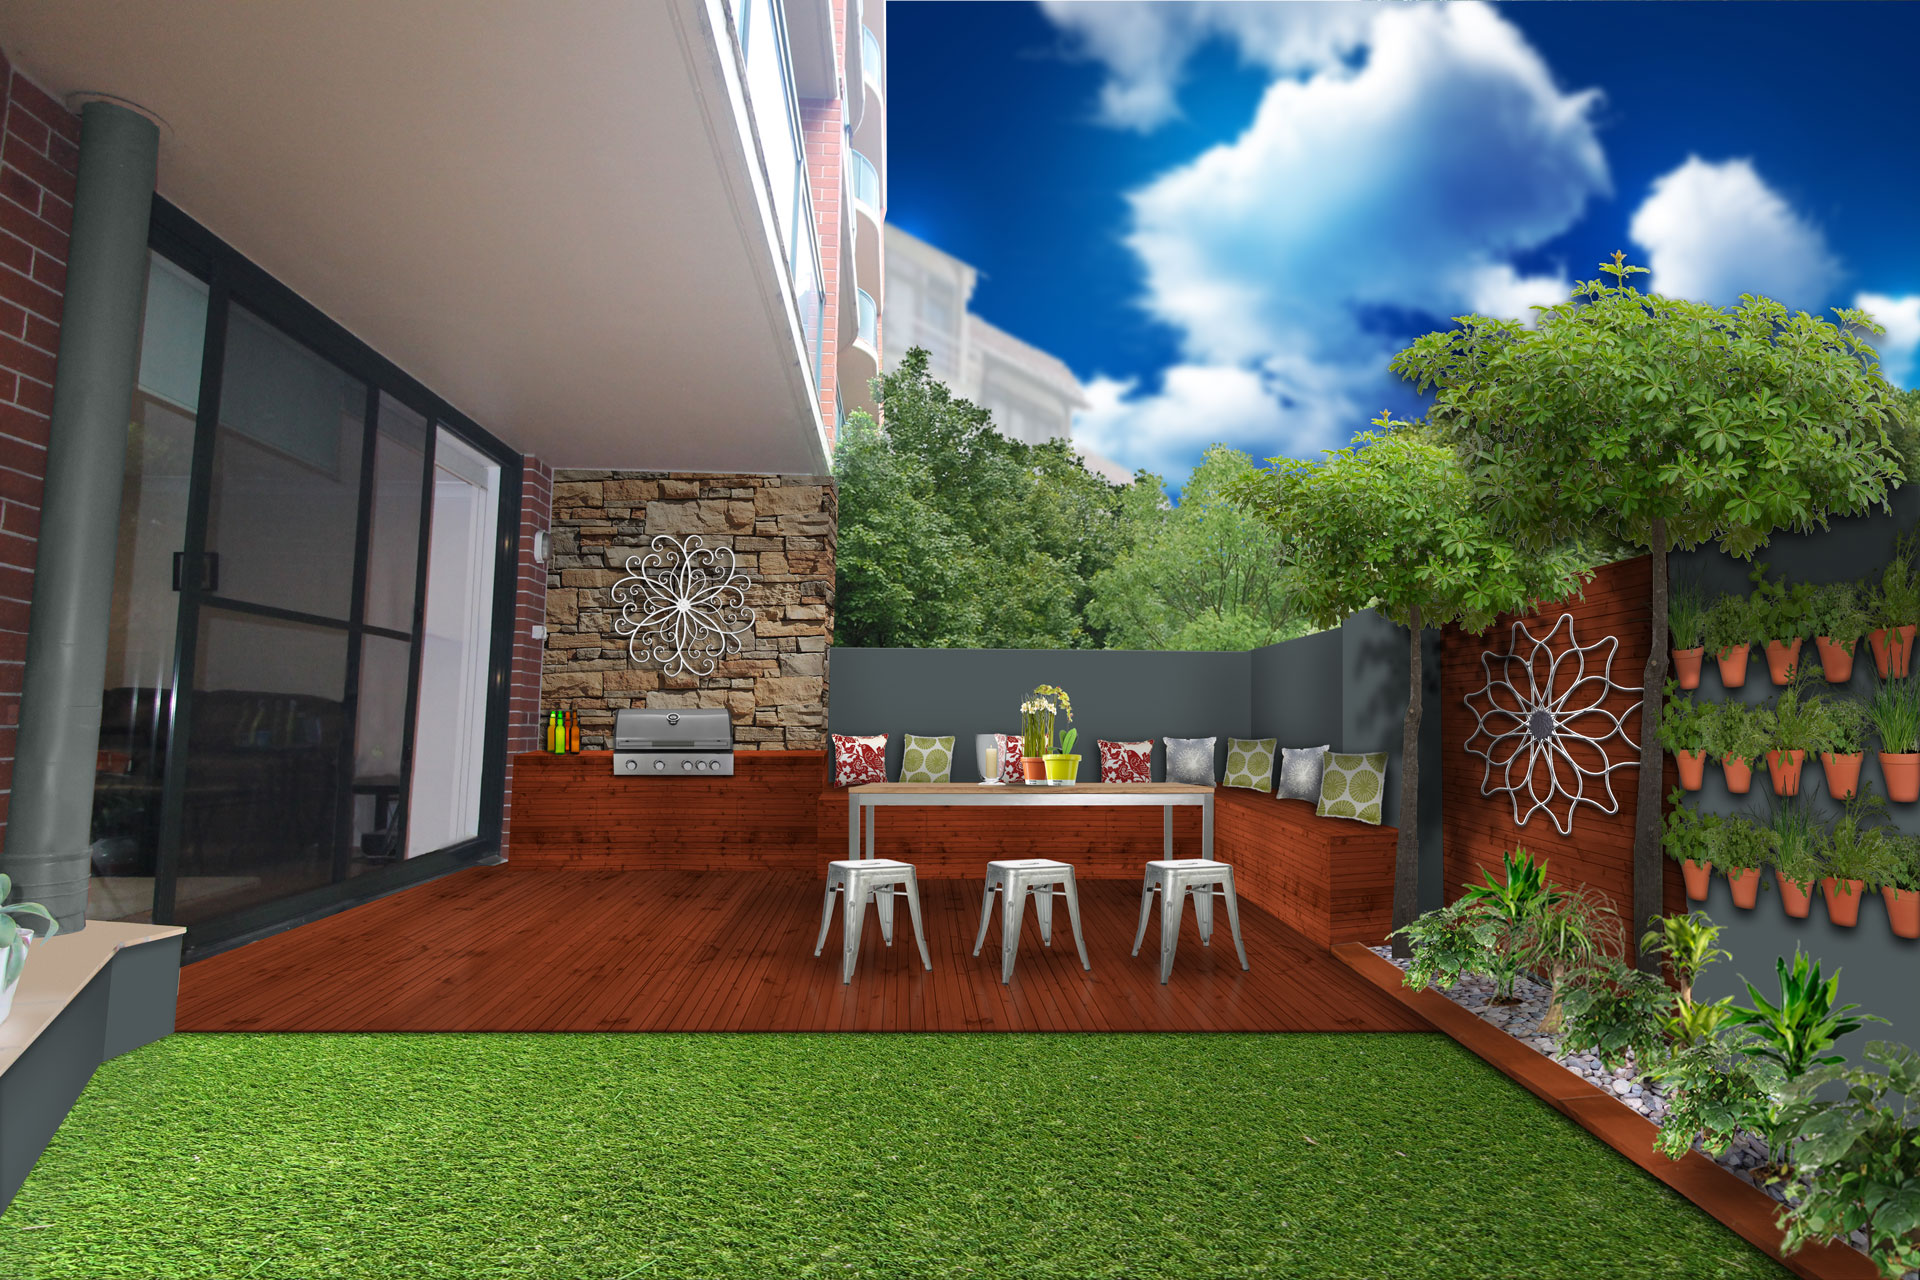 RFP-Virtual-Makeover-May2014-AFTER.jpg